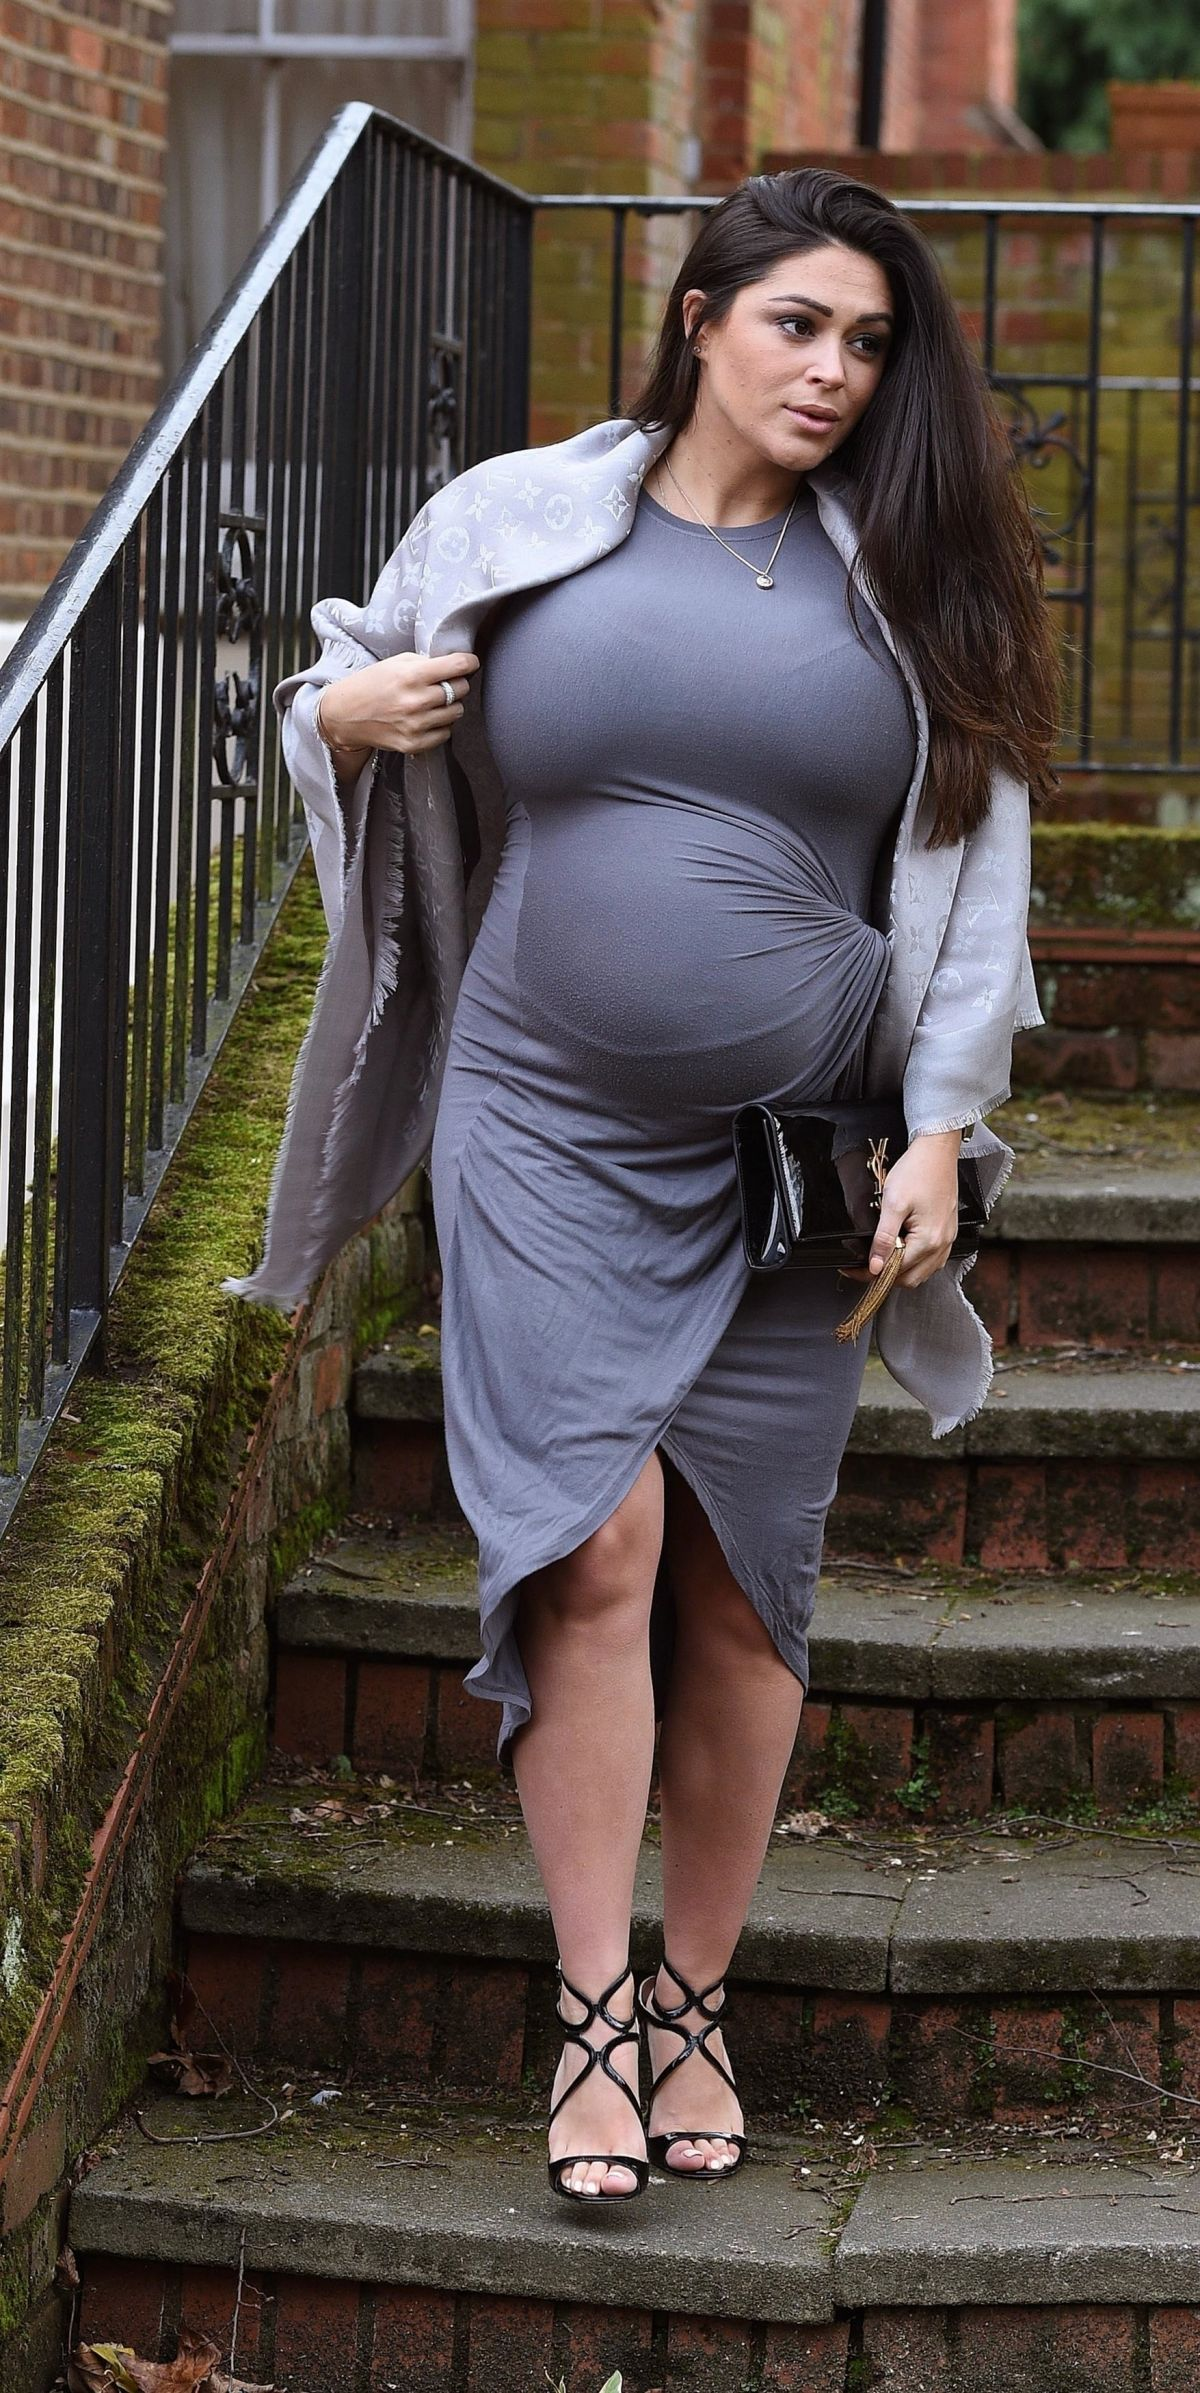 pregnant woman holds her tummy and looks at it - WorkLife Law